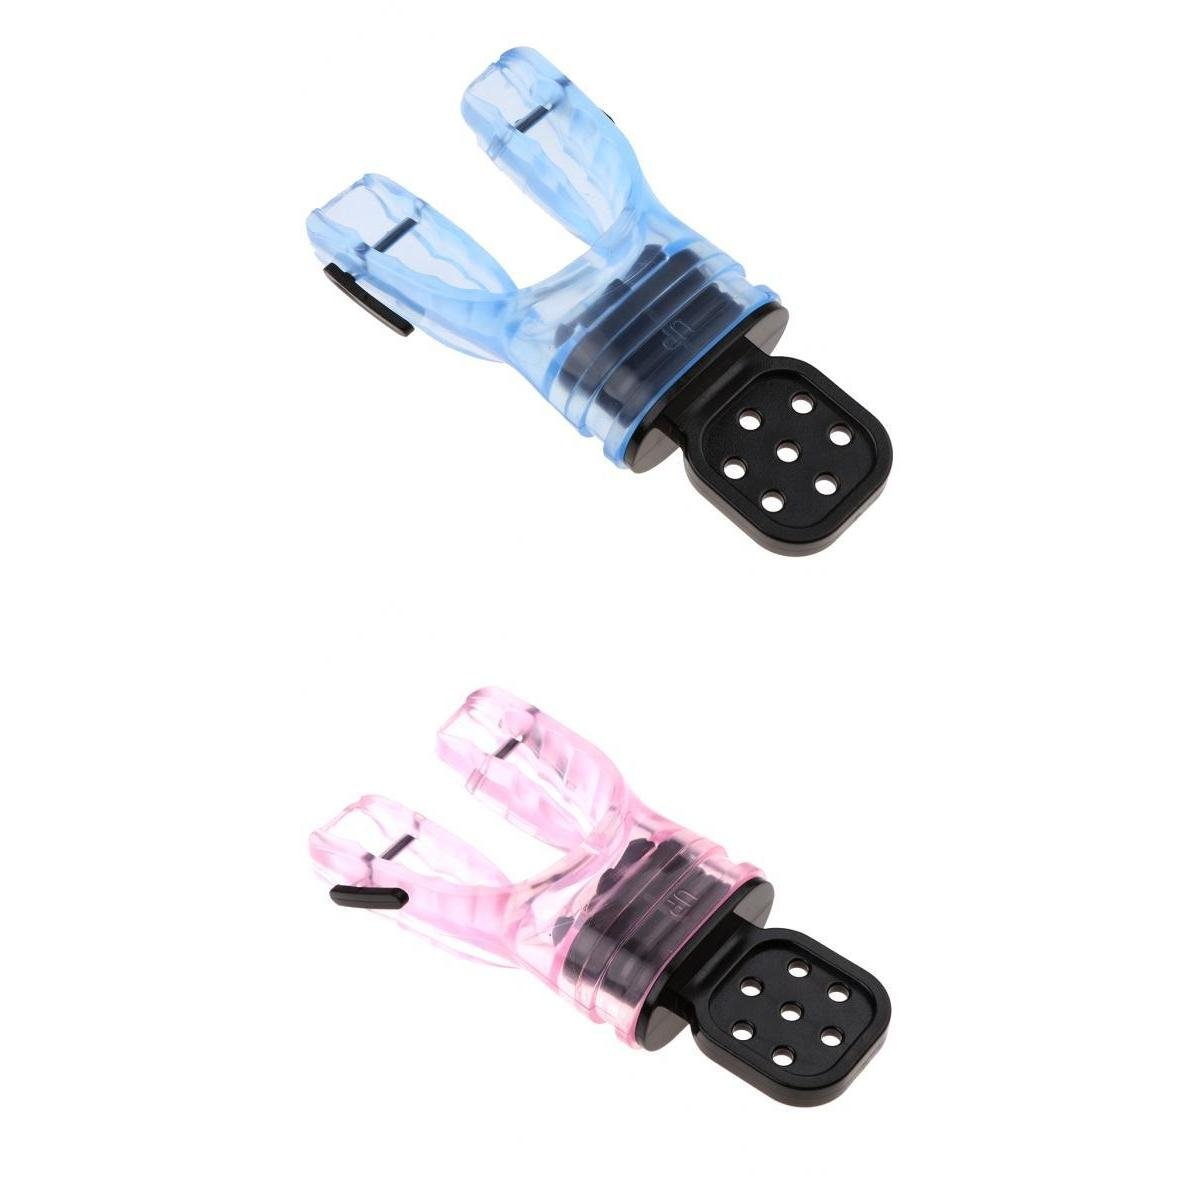 MagiDeal 2Pcs Comfort Silicone Scuba Diving Dive Snorkel Standard Moldable Regulator with Tie Wrap - Choice of Color